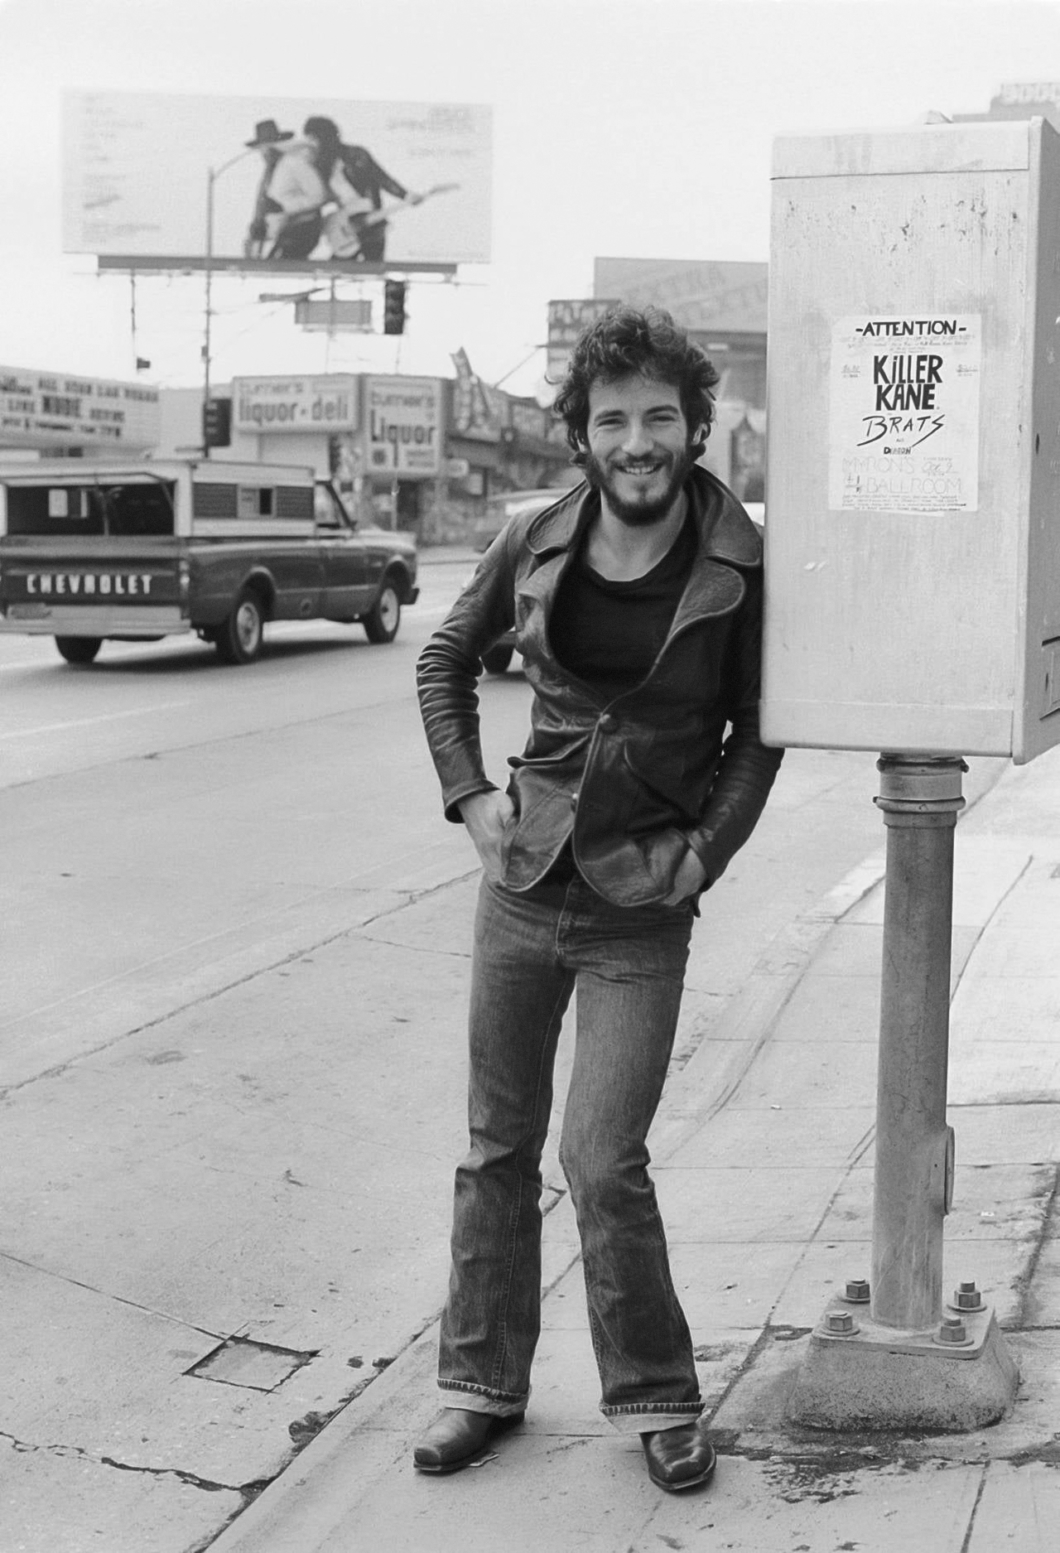 Bruce Springsteen for Born to Run, Los Angeles, 1975. Photo: Terry O'Neill